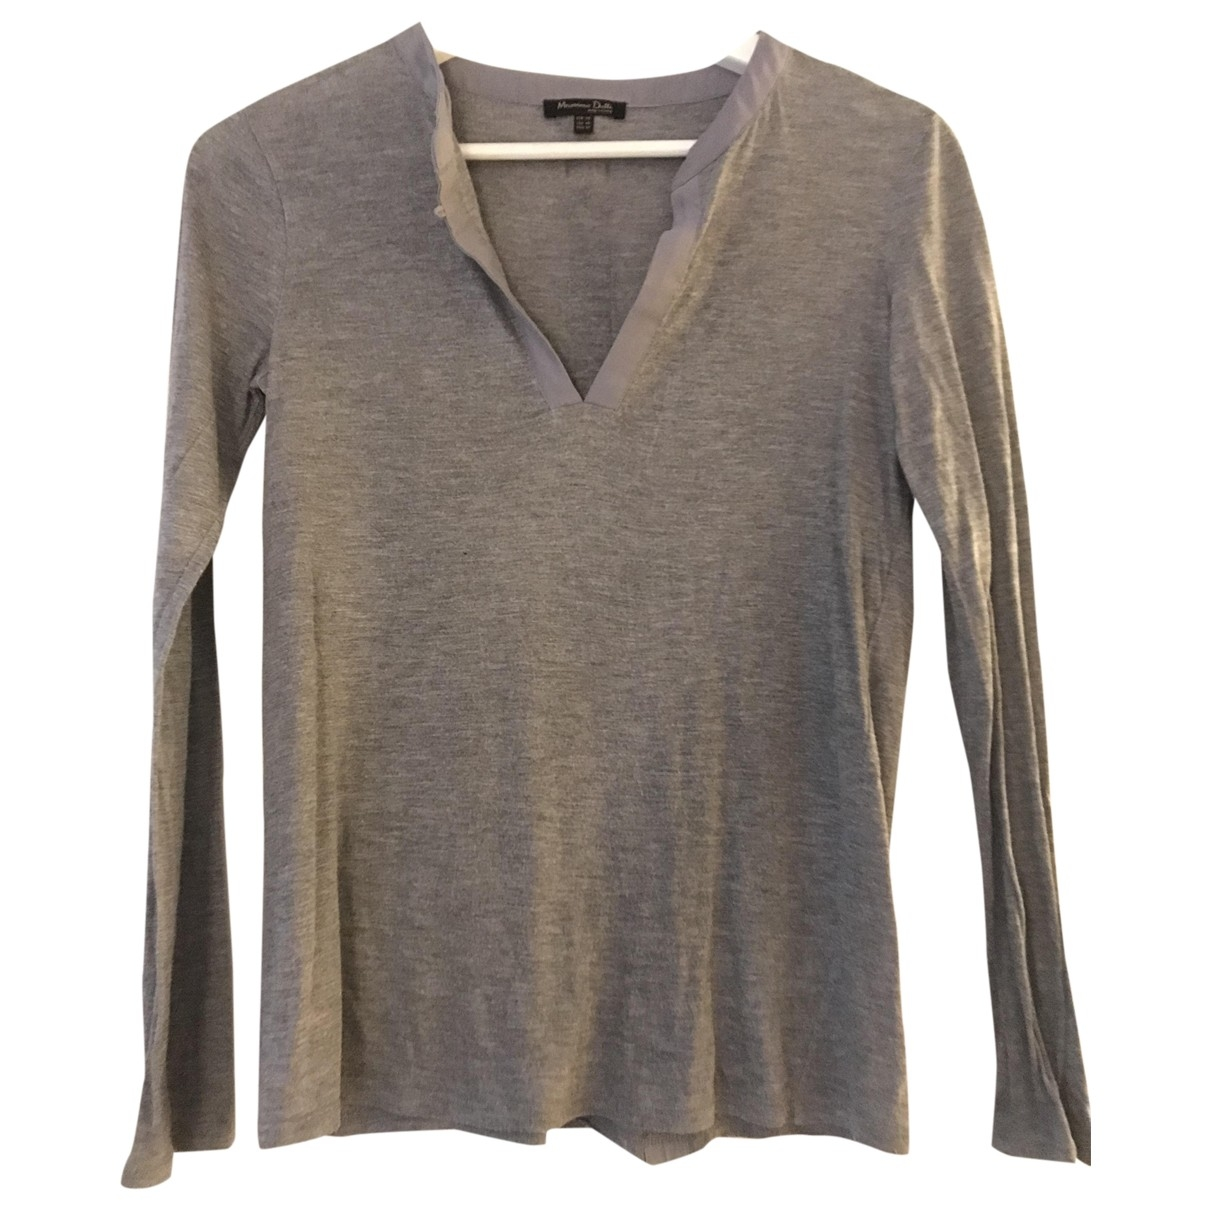 Massimo Dutti \N Grey Cotton  top for Women XS International